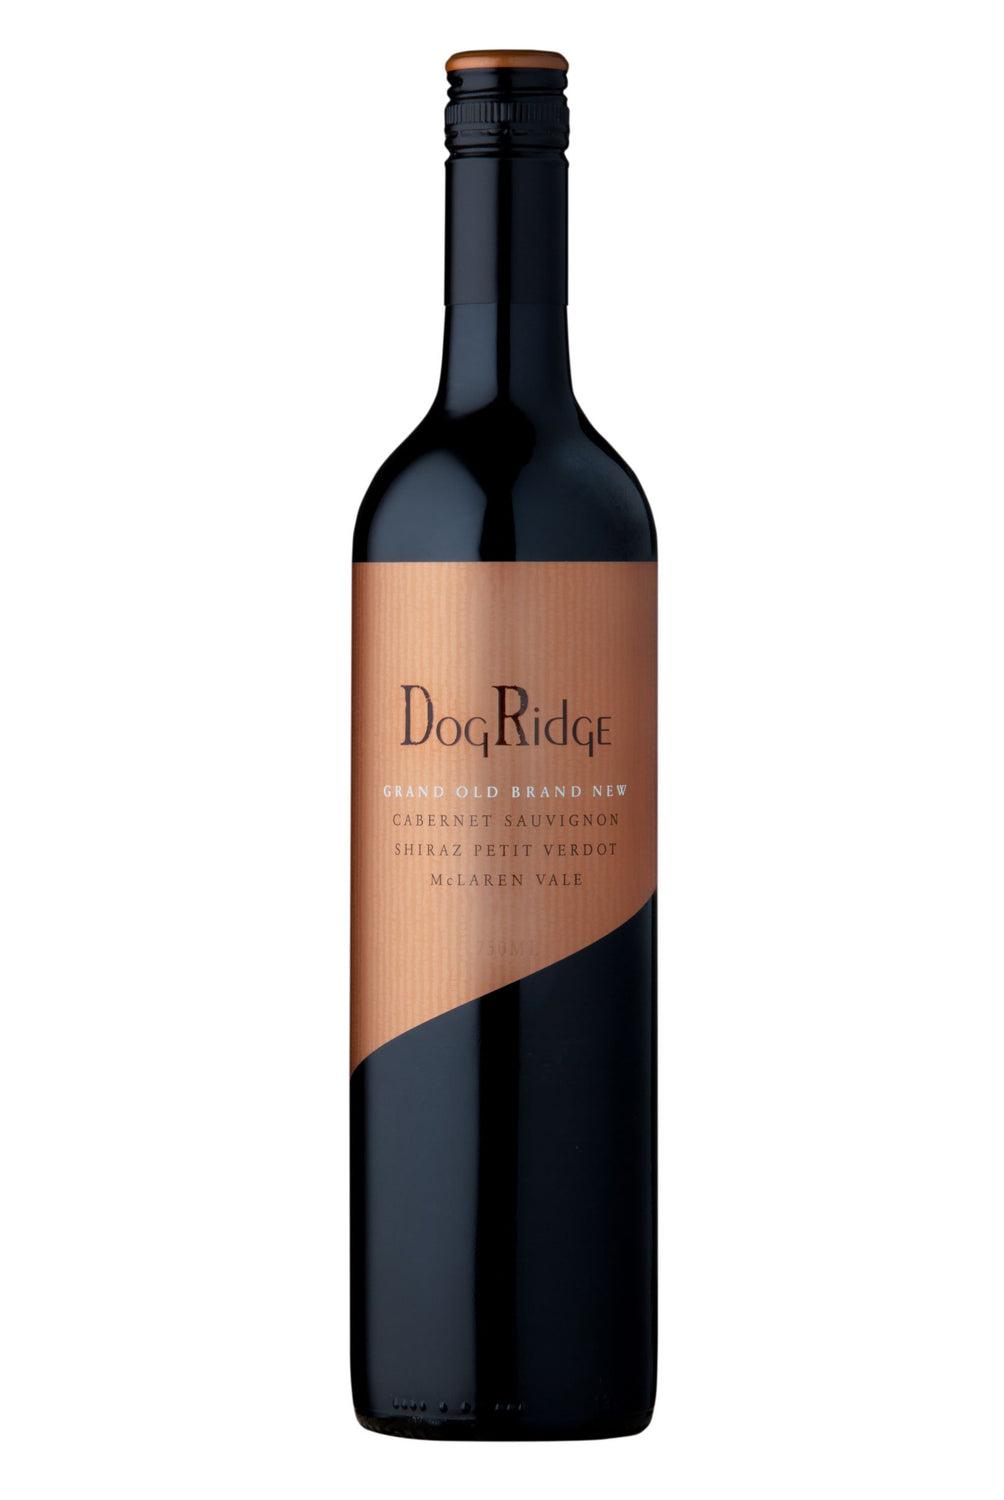 DogRidge GRAND OLD BRAND NEW Cab/Shiraz/Petit Verdot - 2013